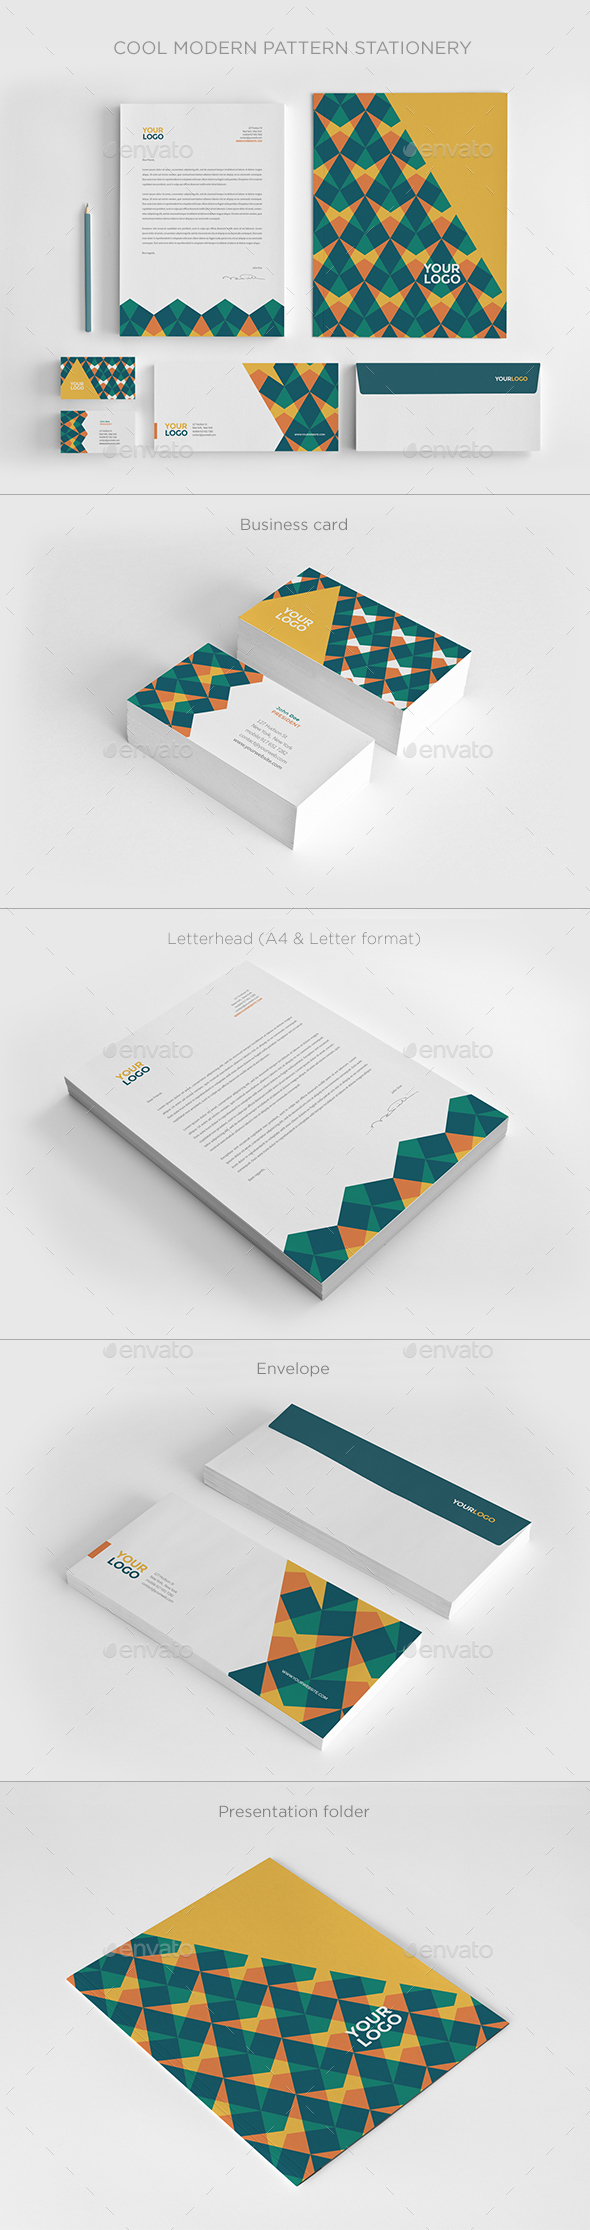 Cool Modern Pattern Stationery - Stationery Print Templates